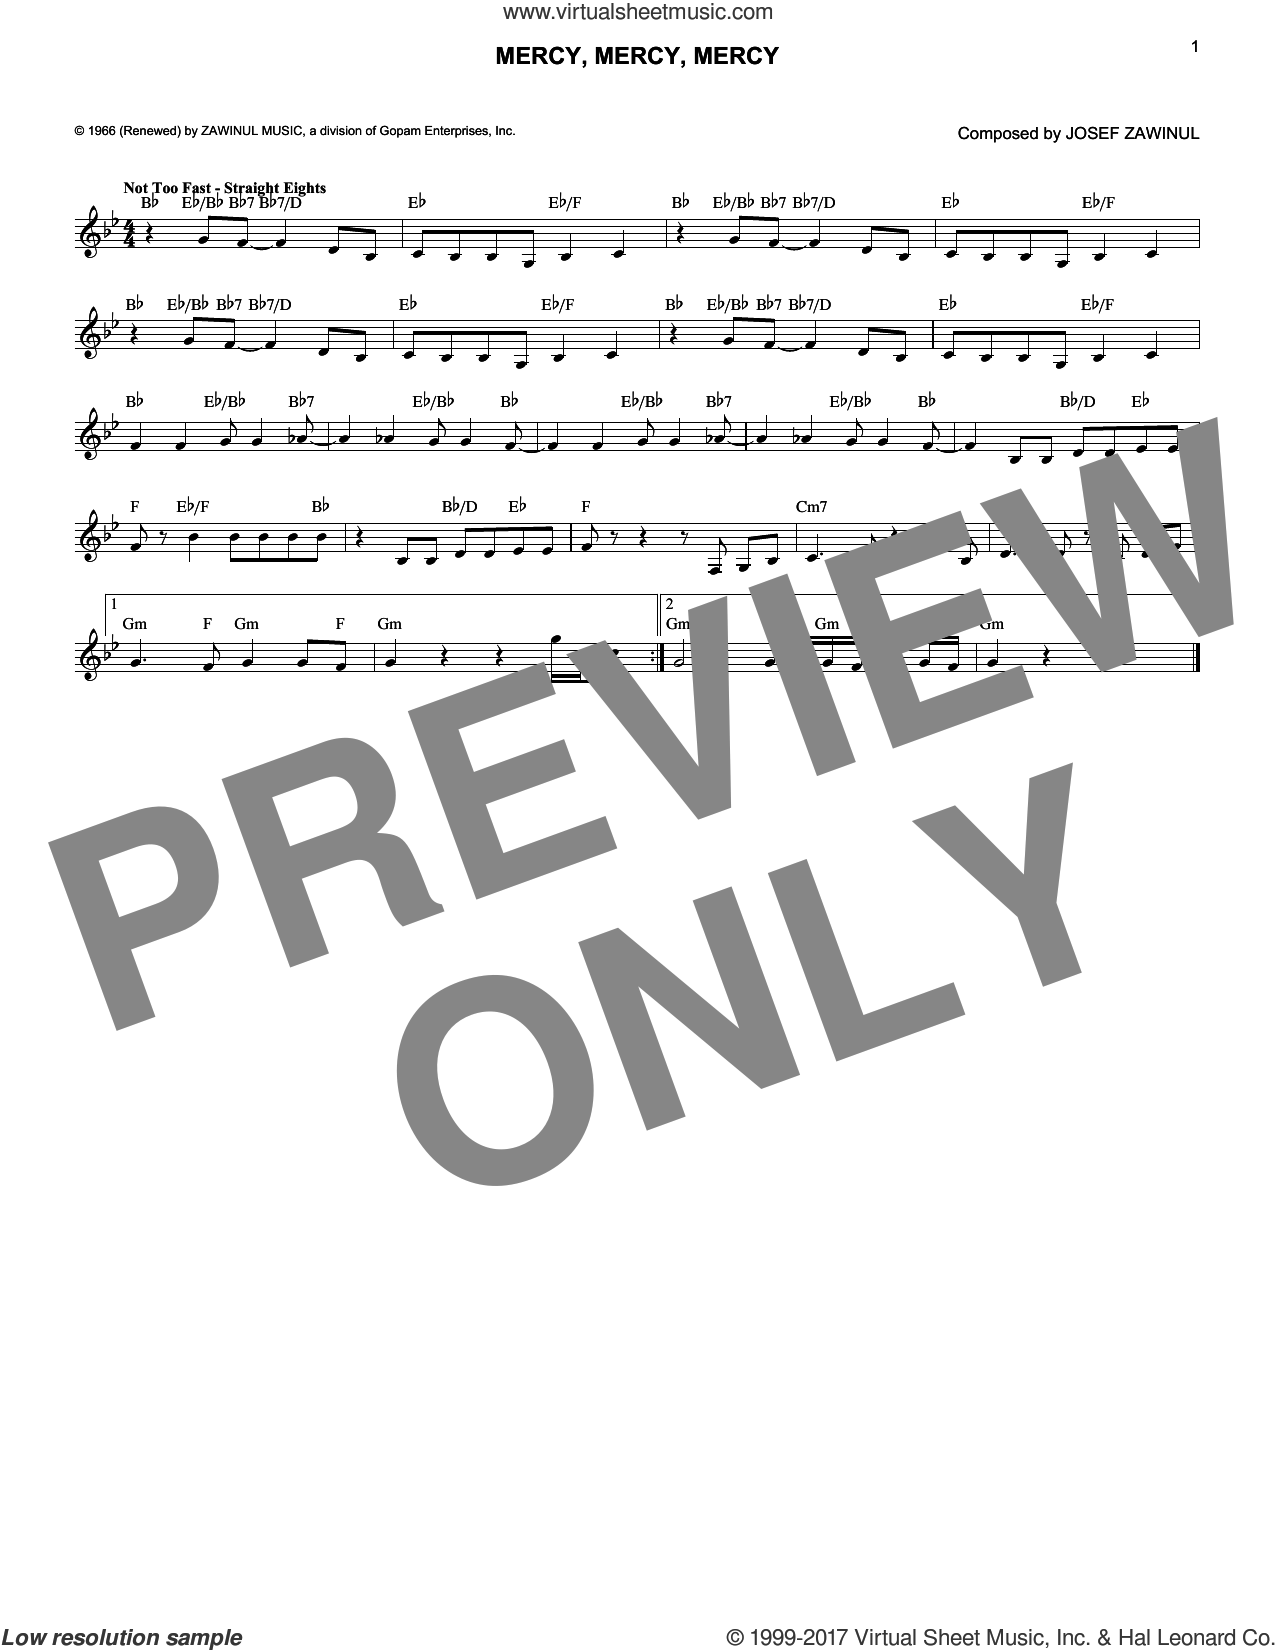 Mercy, Mercy, Mercy sheet music for voice and other instruments (fake book) by The Buckinghams and Josef Zawinul, intermediate skill level